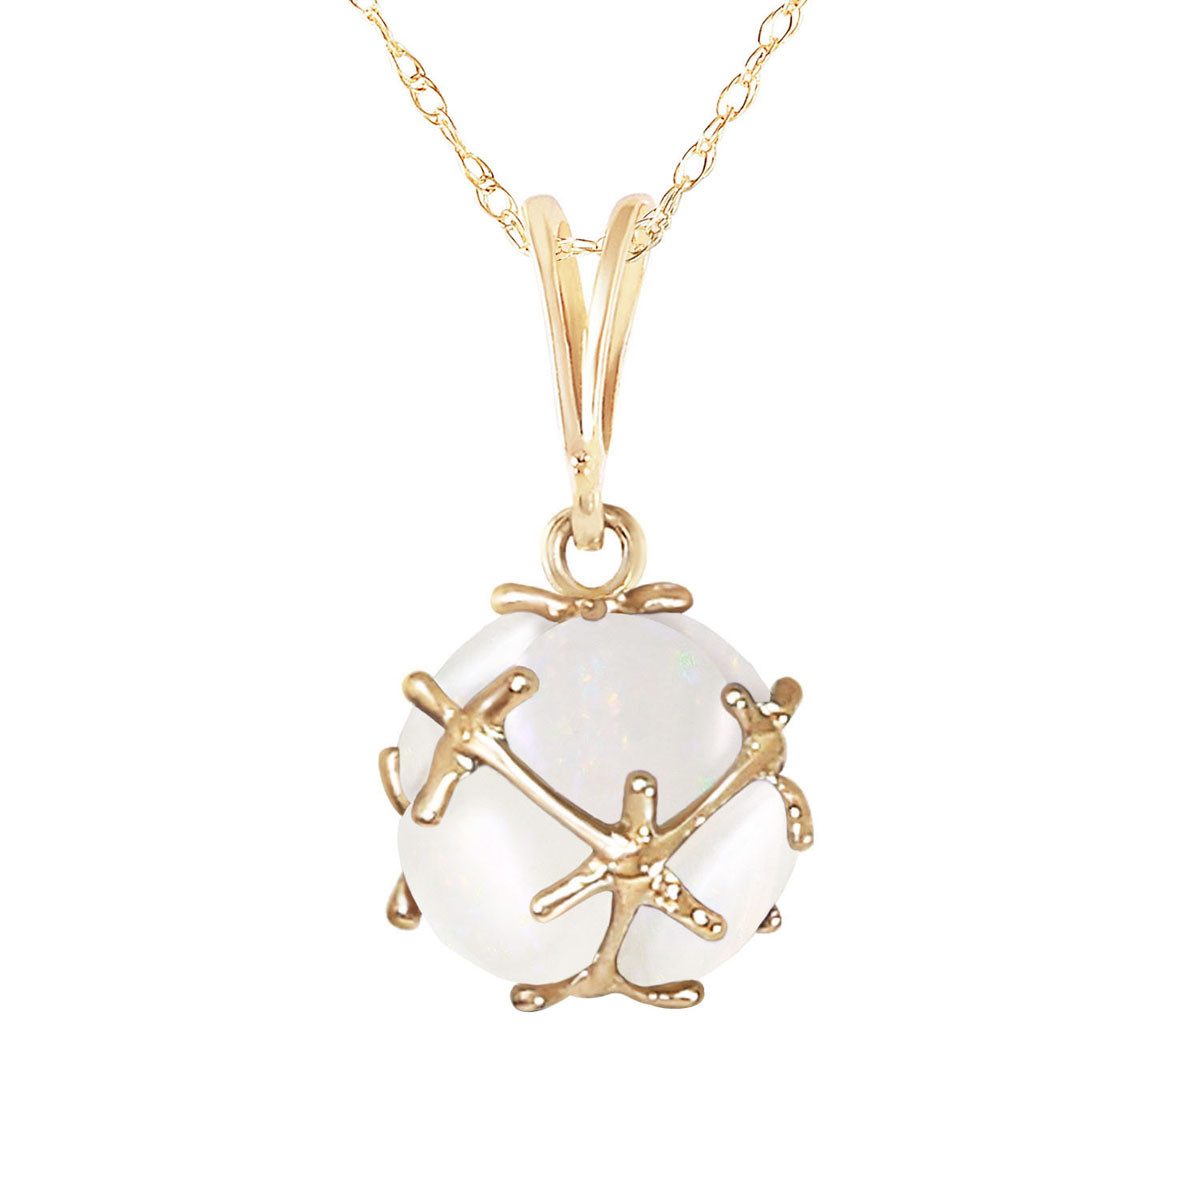 Round Cut Opal Pendant Necklace 2 ctw in 9ct Gold